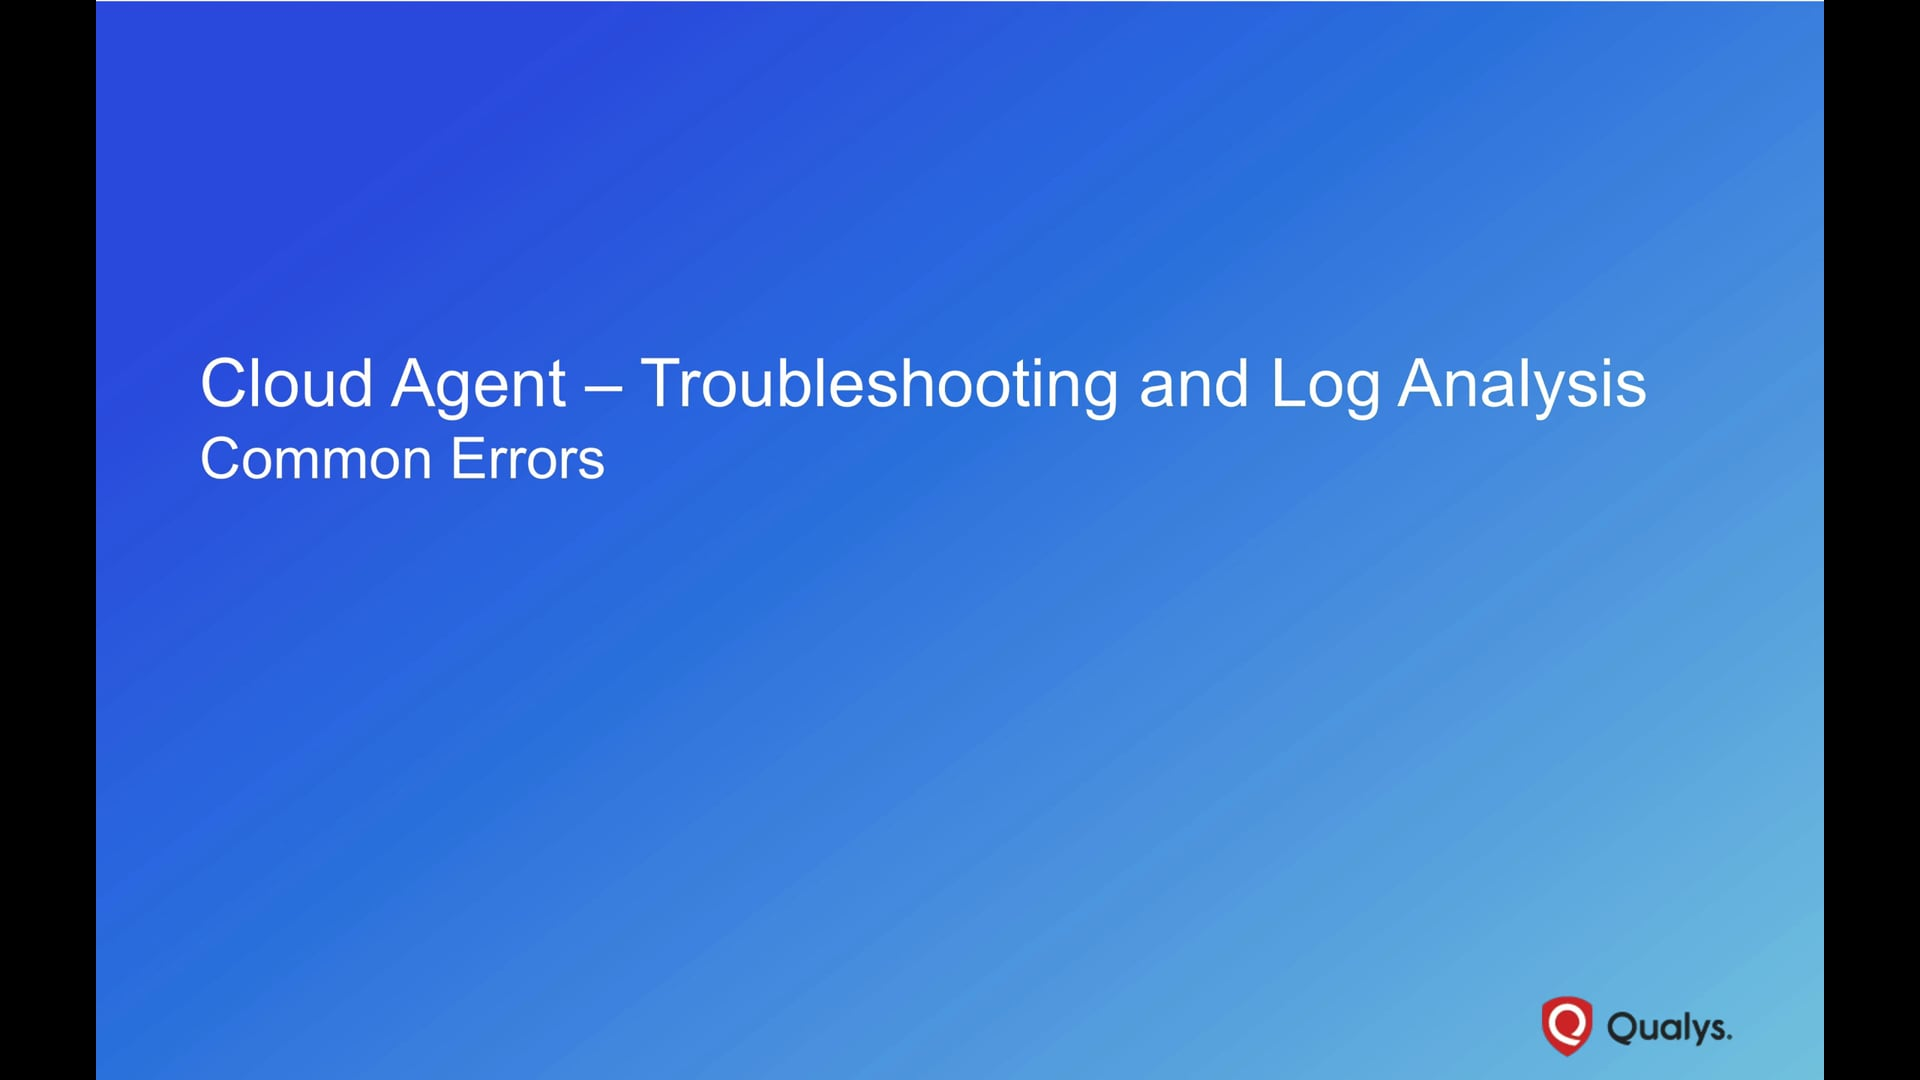 Cloud Agent Troubleshooting – Common Errors